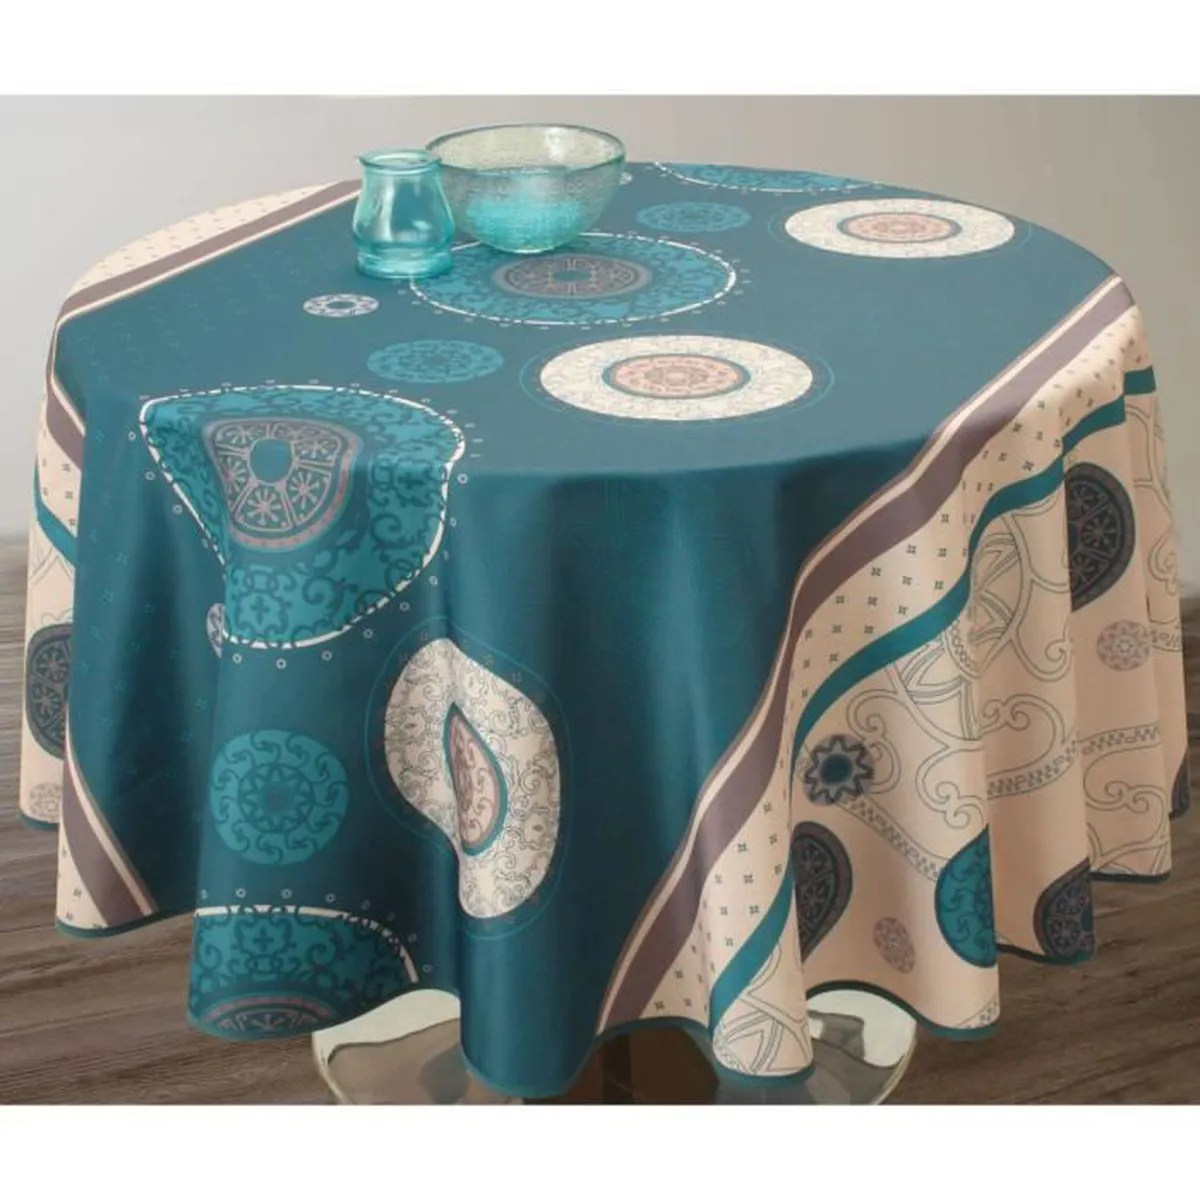 Nappe De Table Ovale Nappe De Table Ovale Tzigane 150x240cm Turquoise Antitache